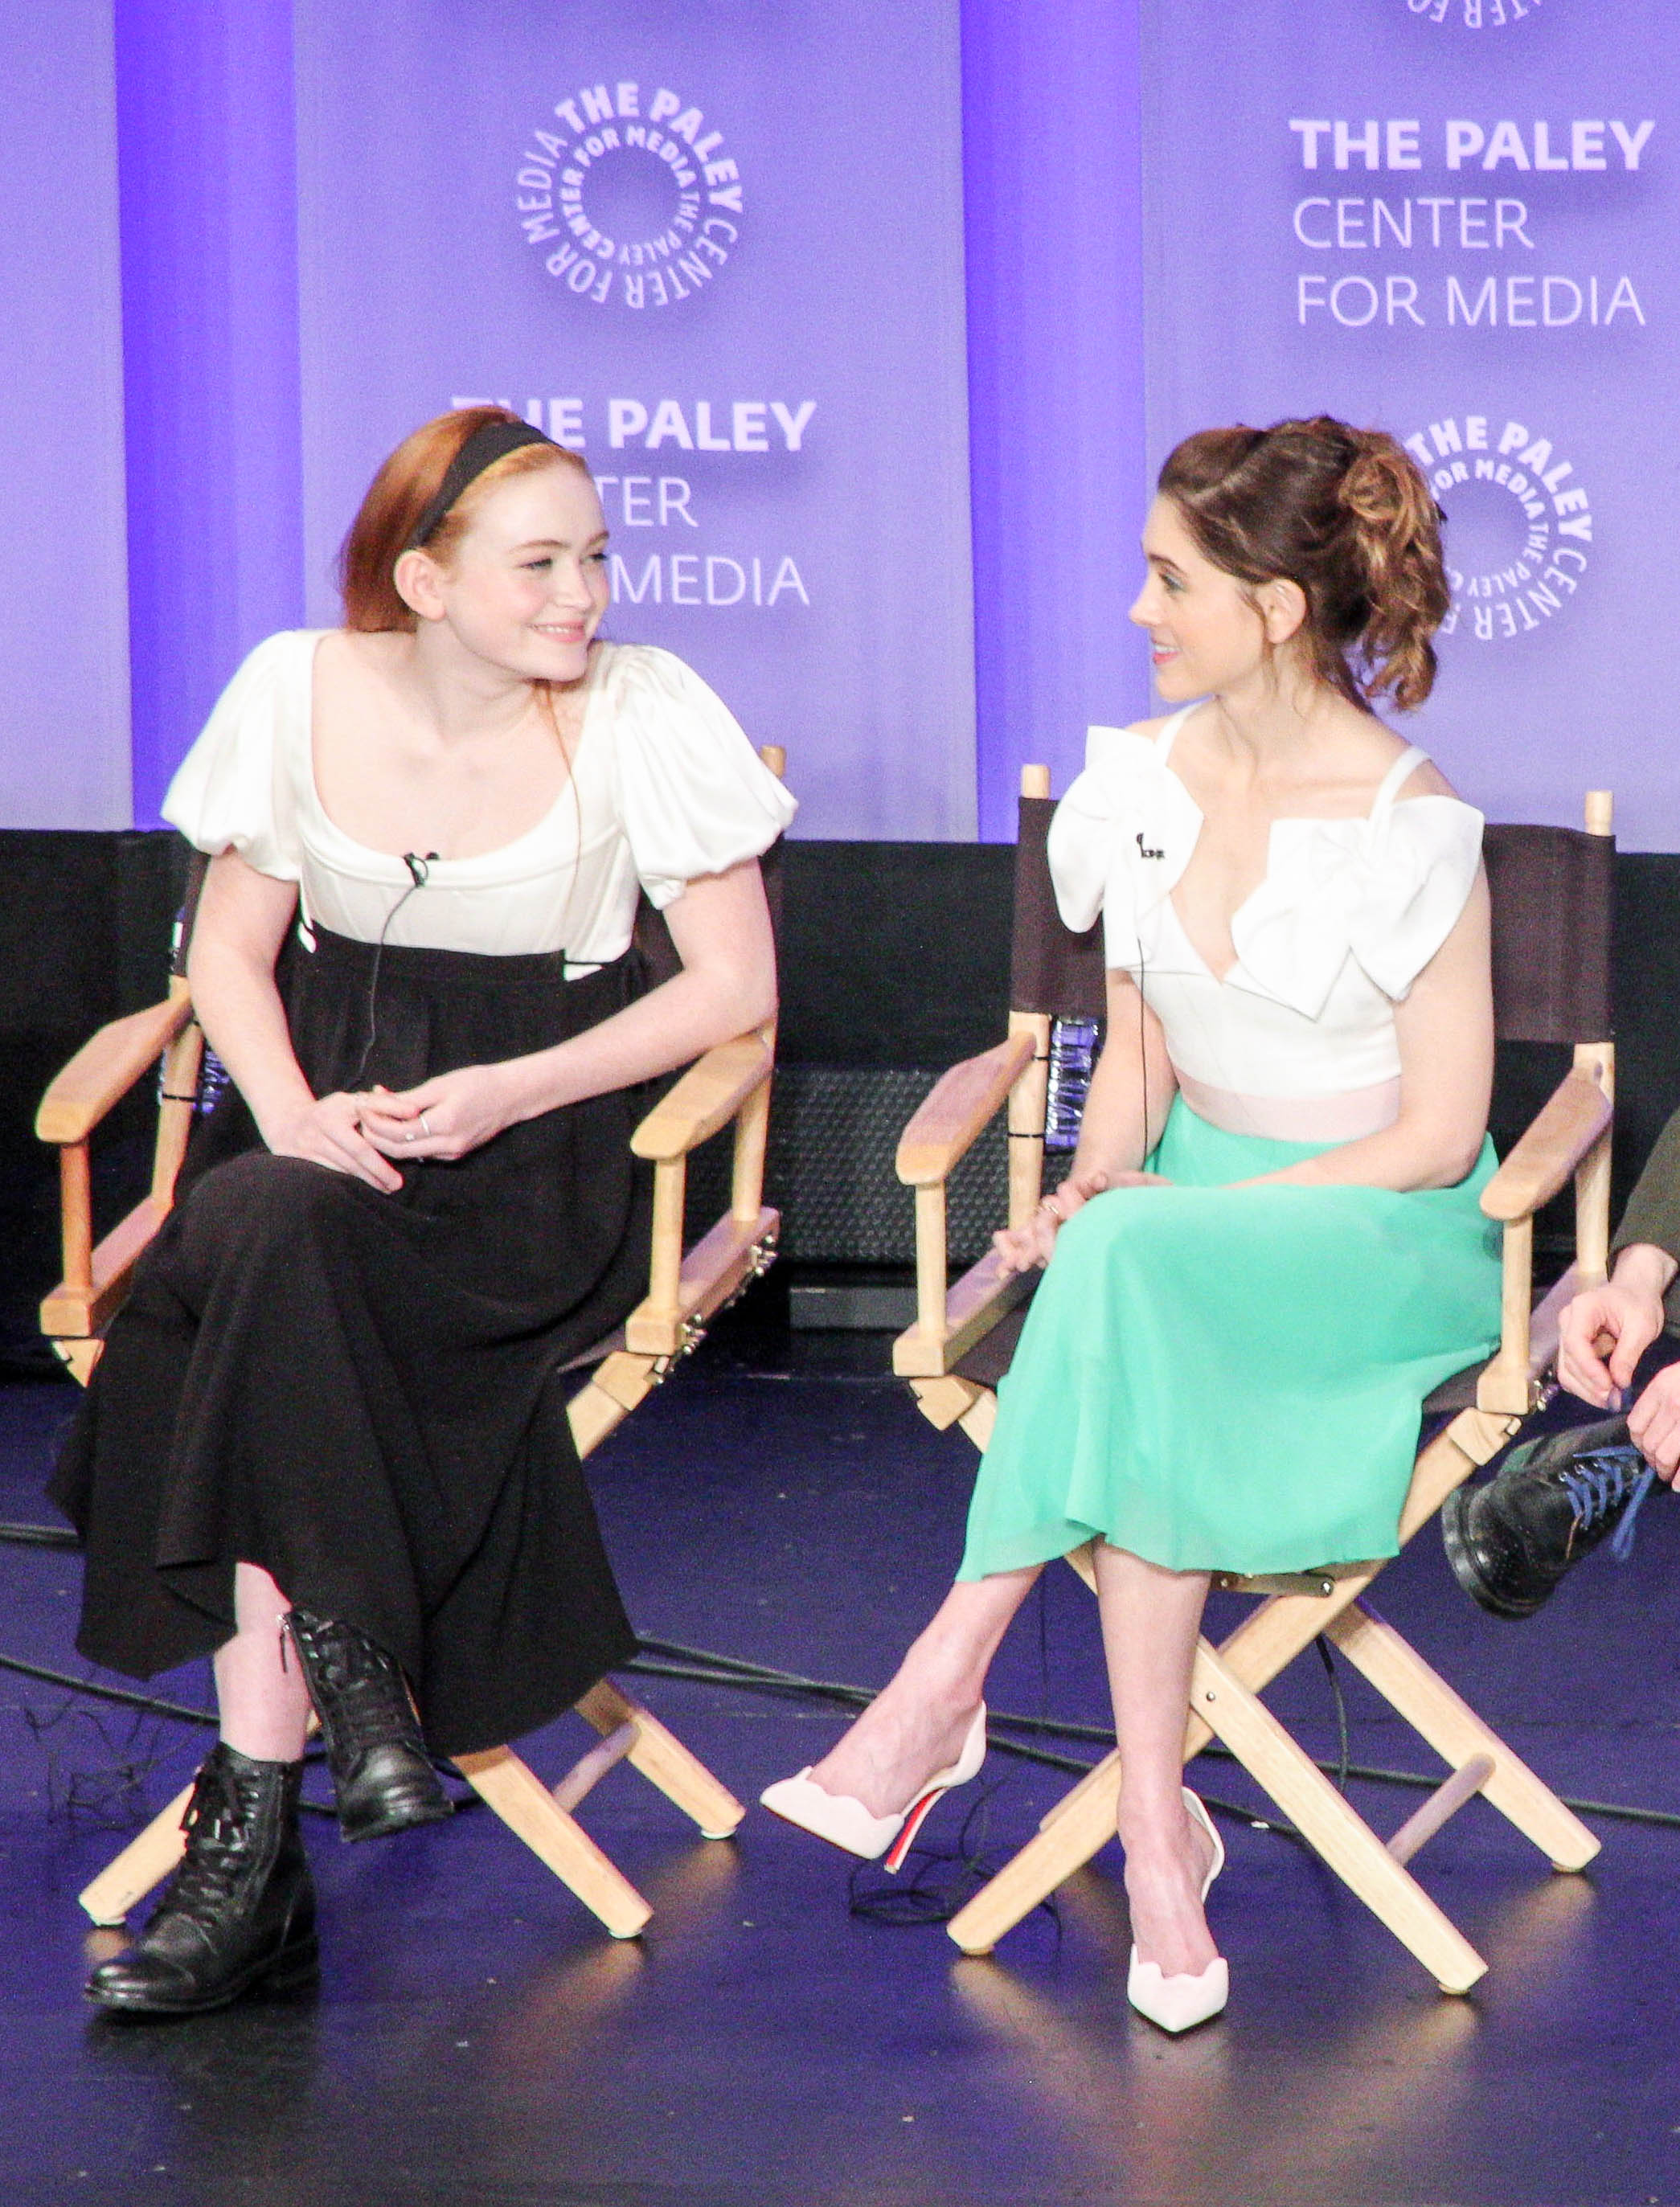 from left to right: Sadie Sink ('Mad' Max Mayfield), and Natalia Dyer (Nancy Wheeler)